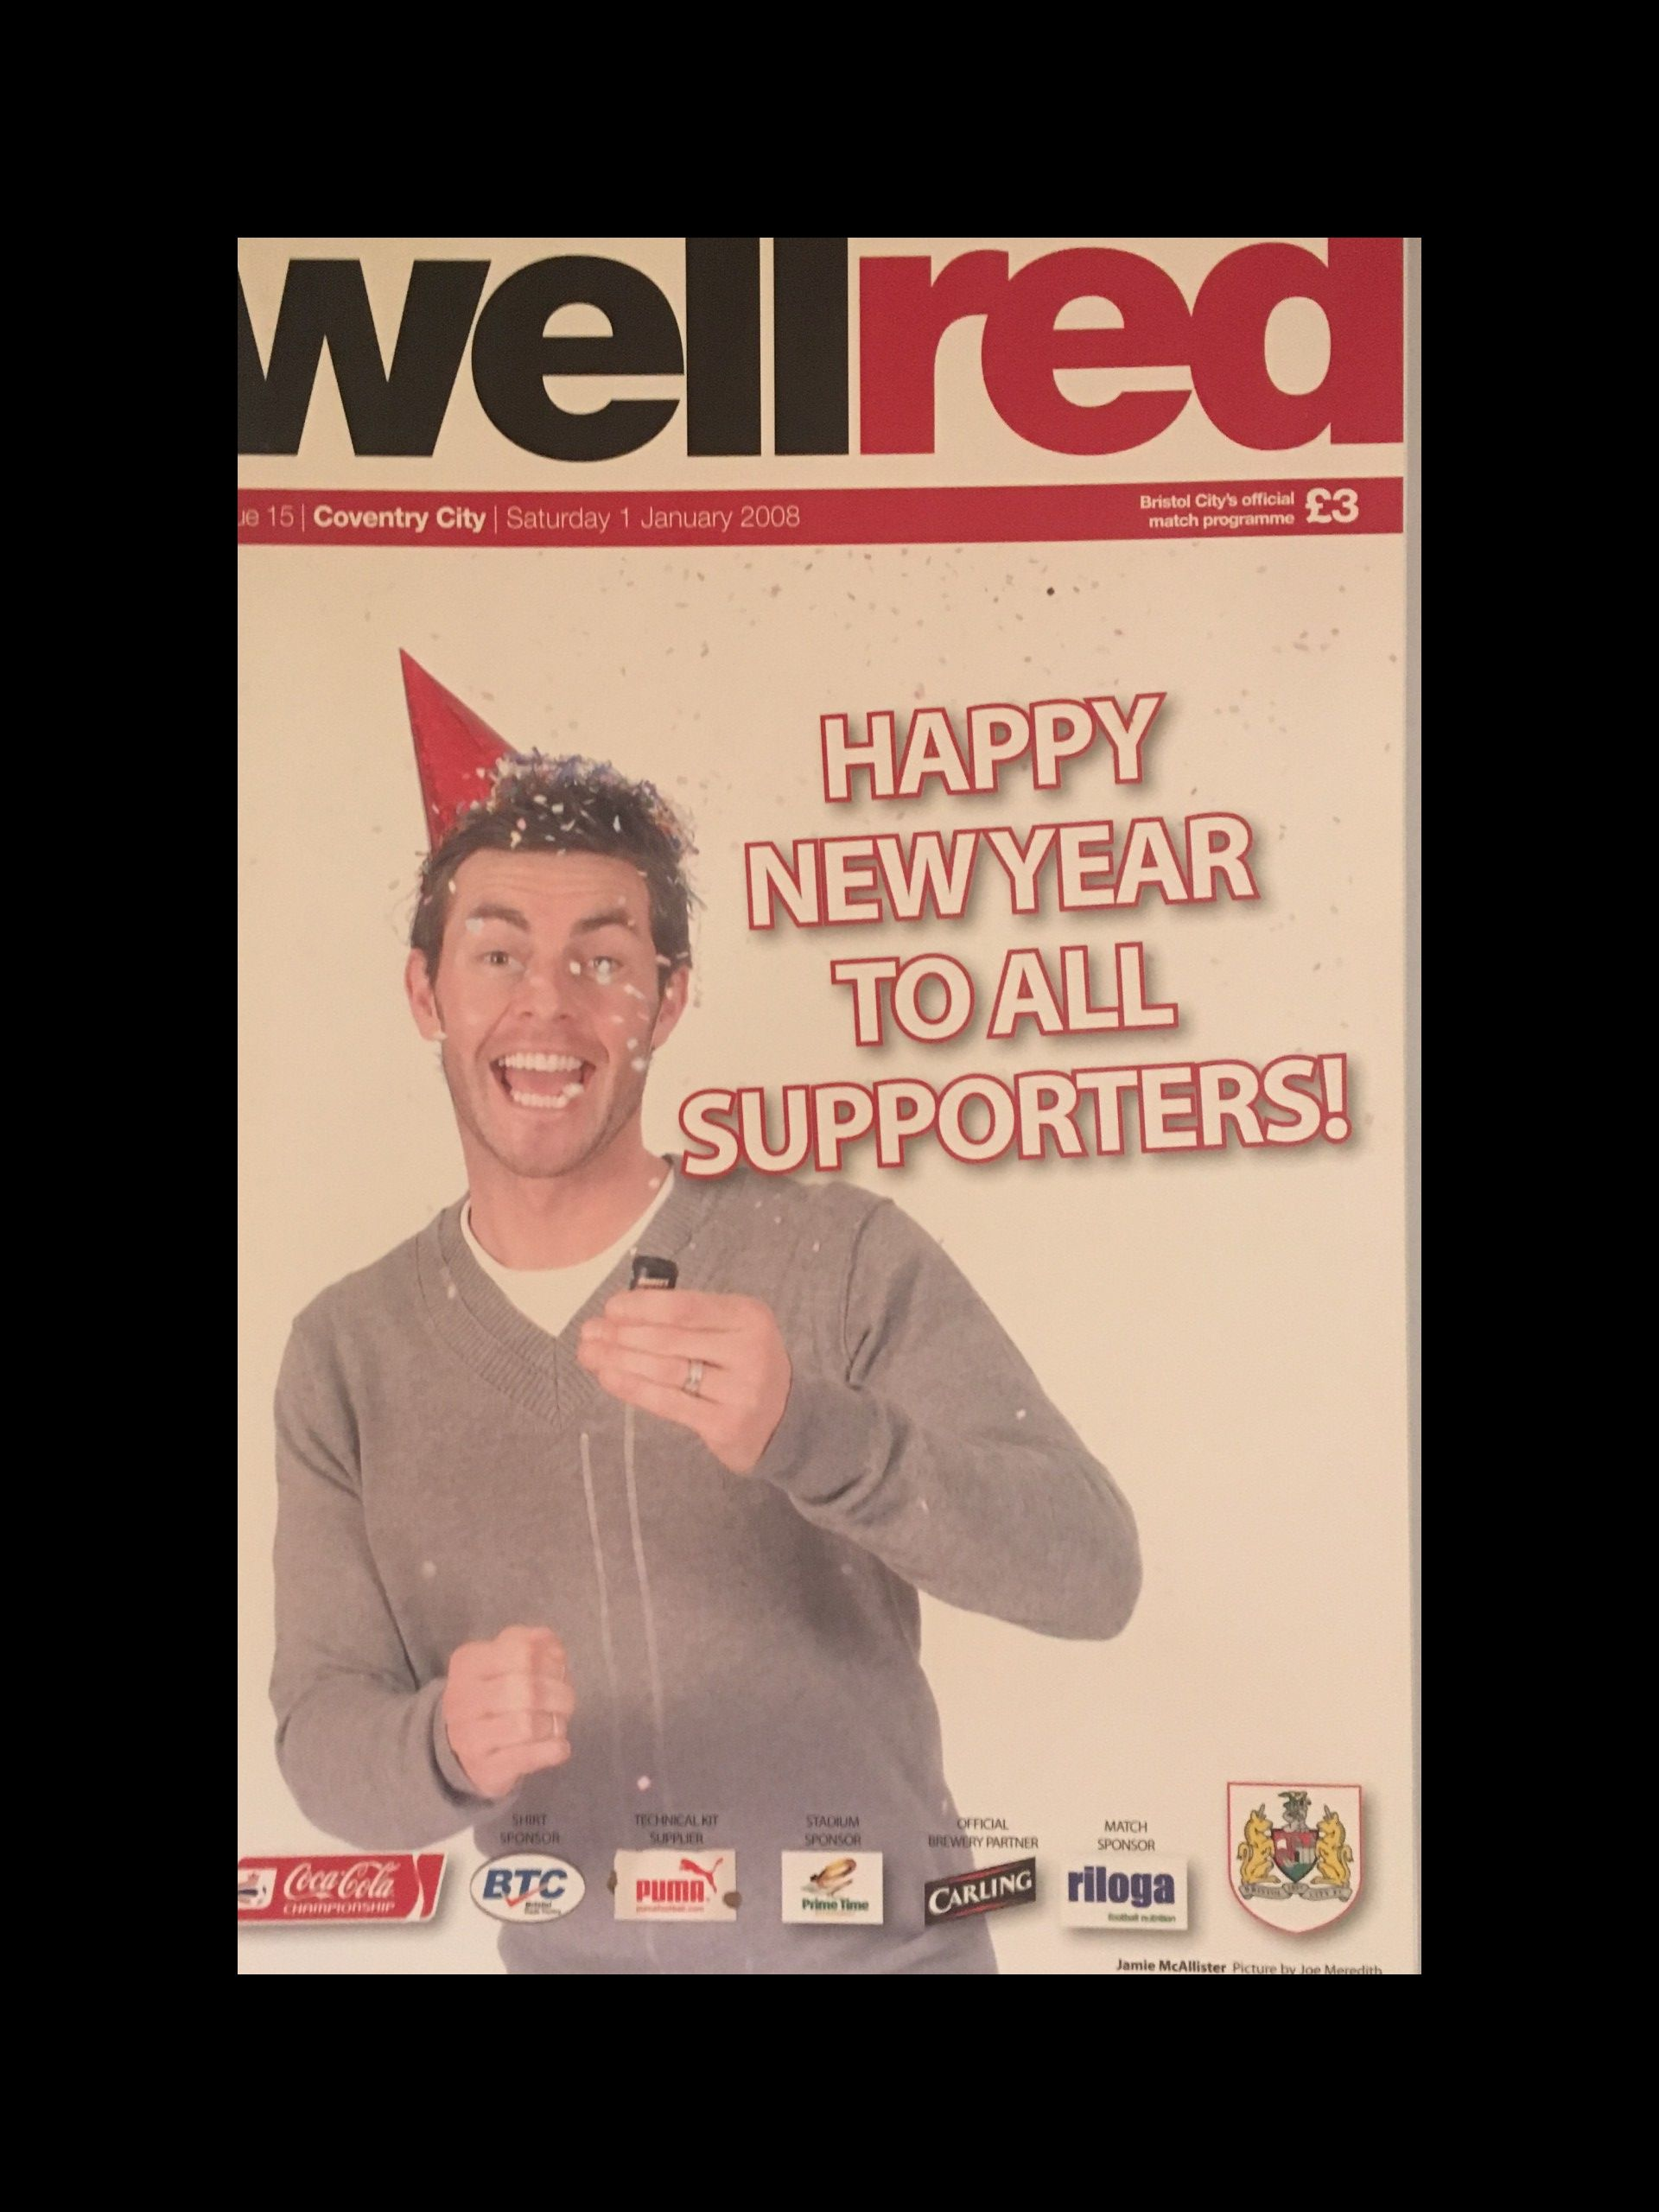 Bristol City v Coventry City 01-01-2008 Programme